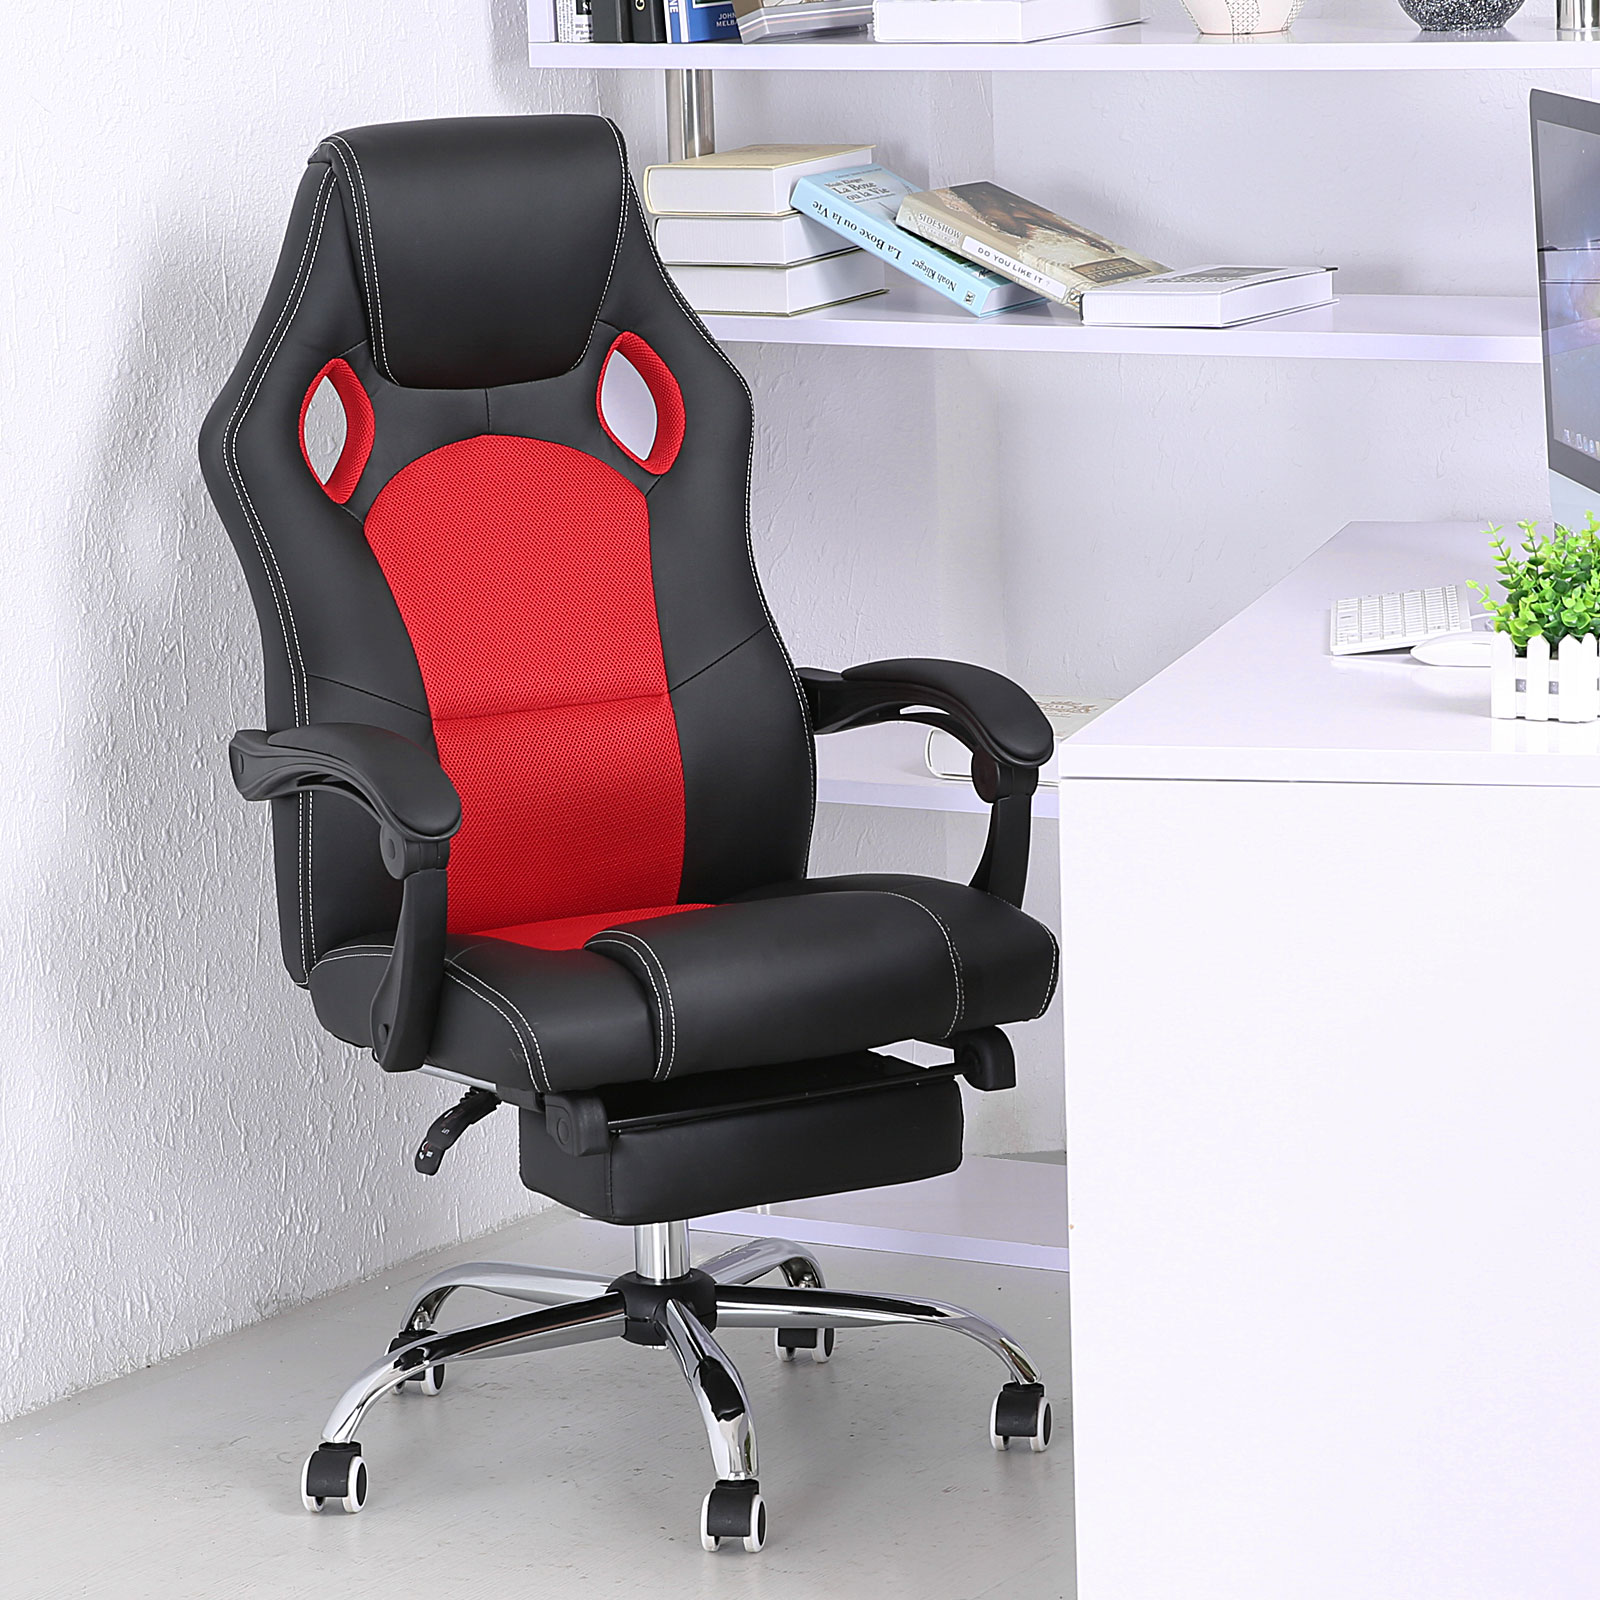 office chair footrest stadium chairs for sale executive ergonomic high back reclining